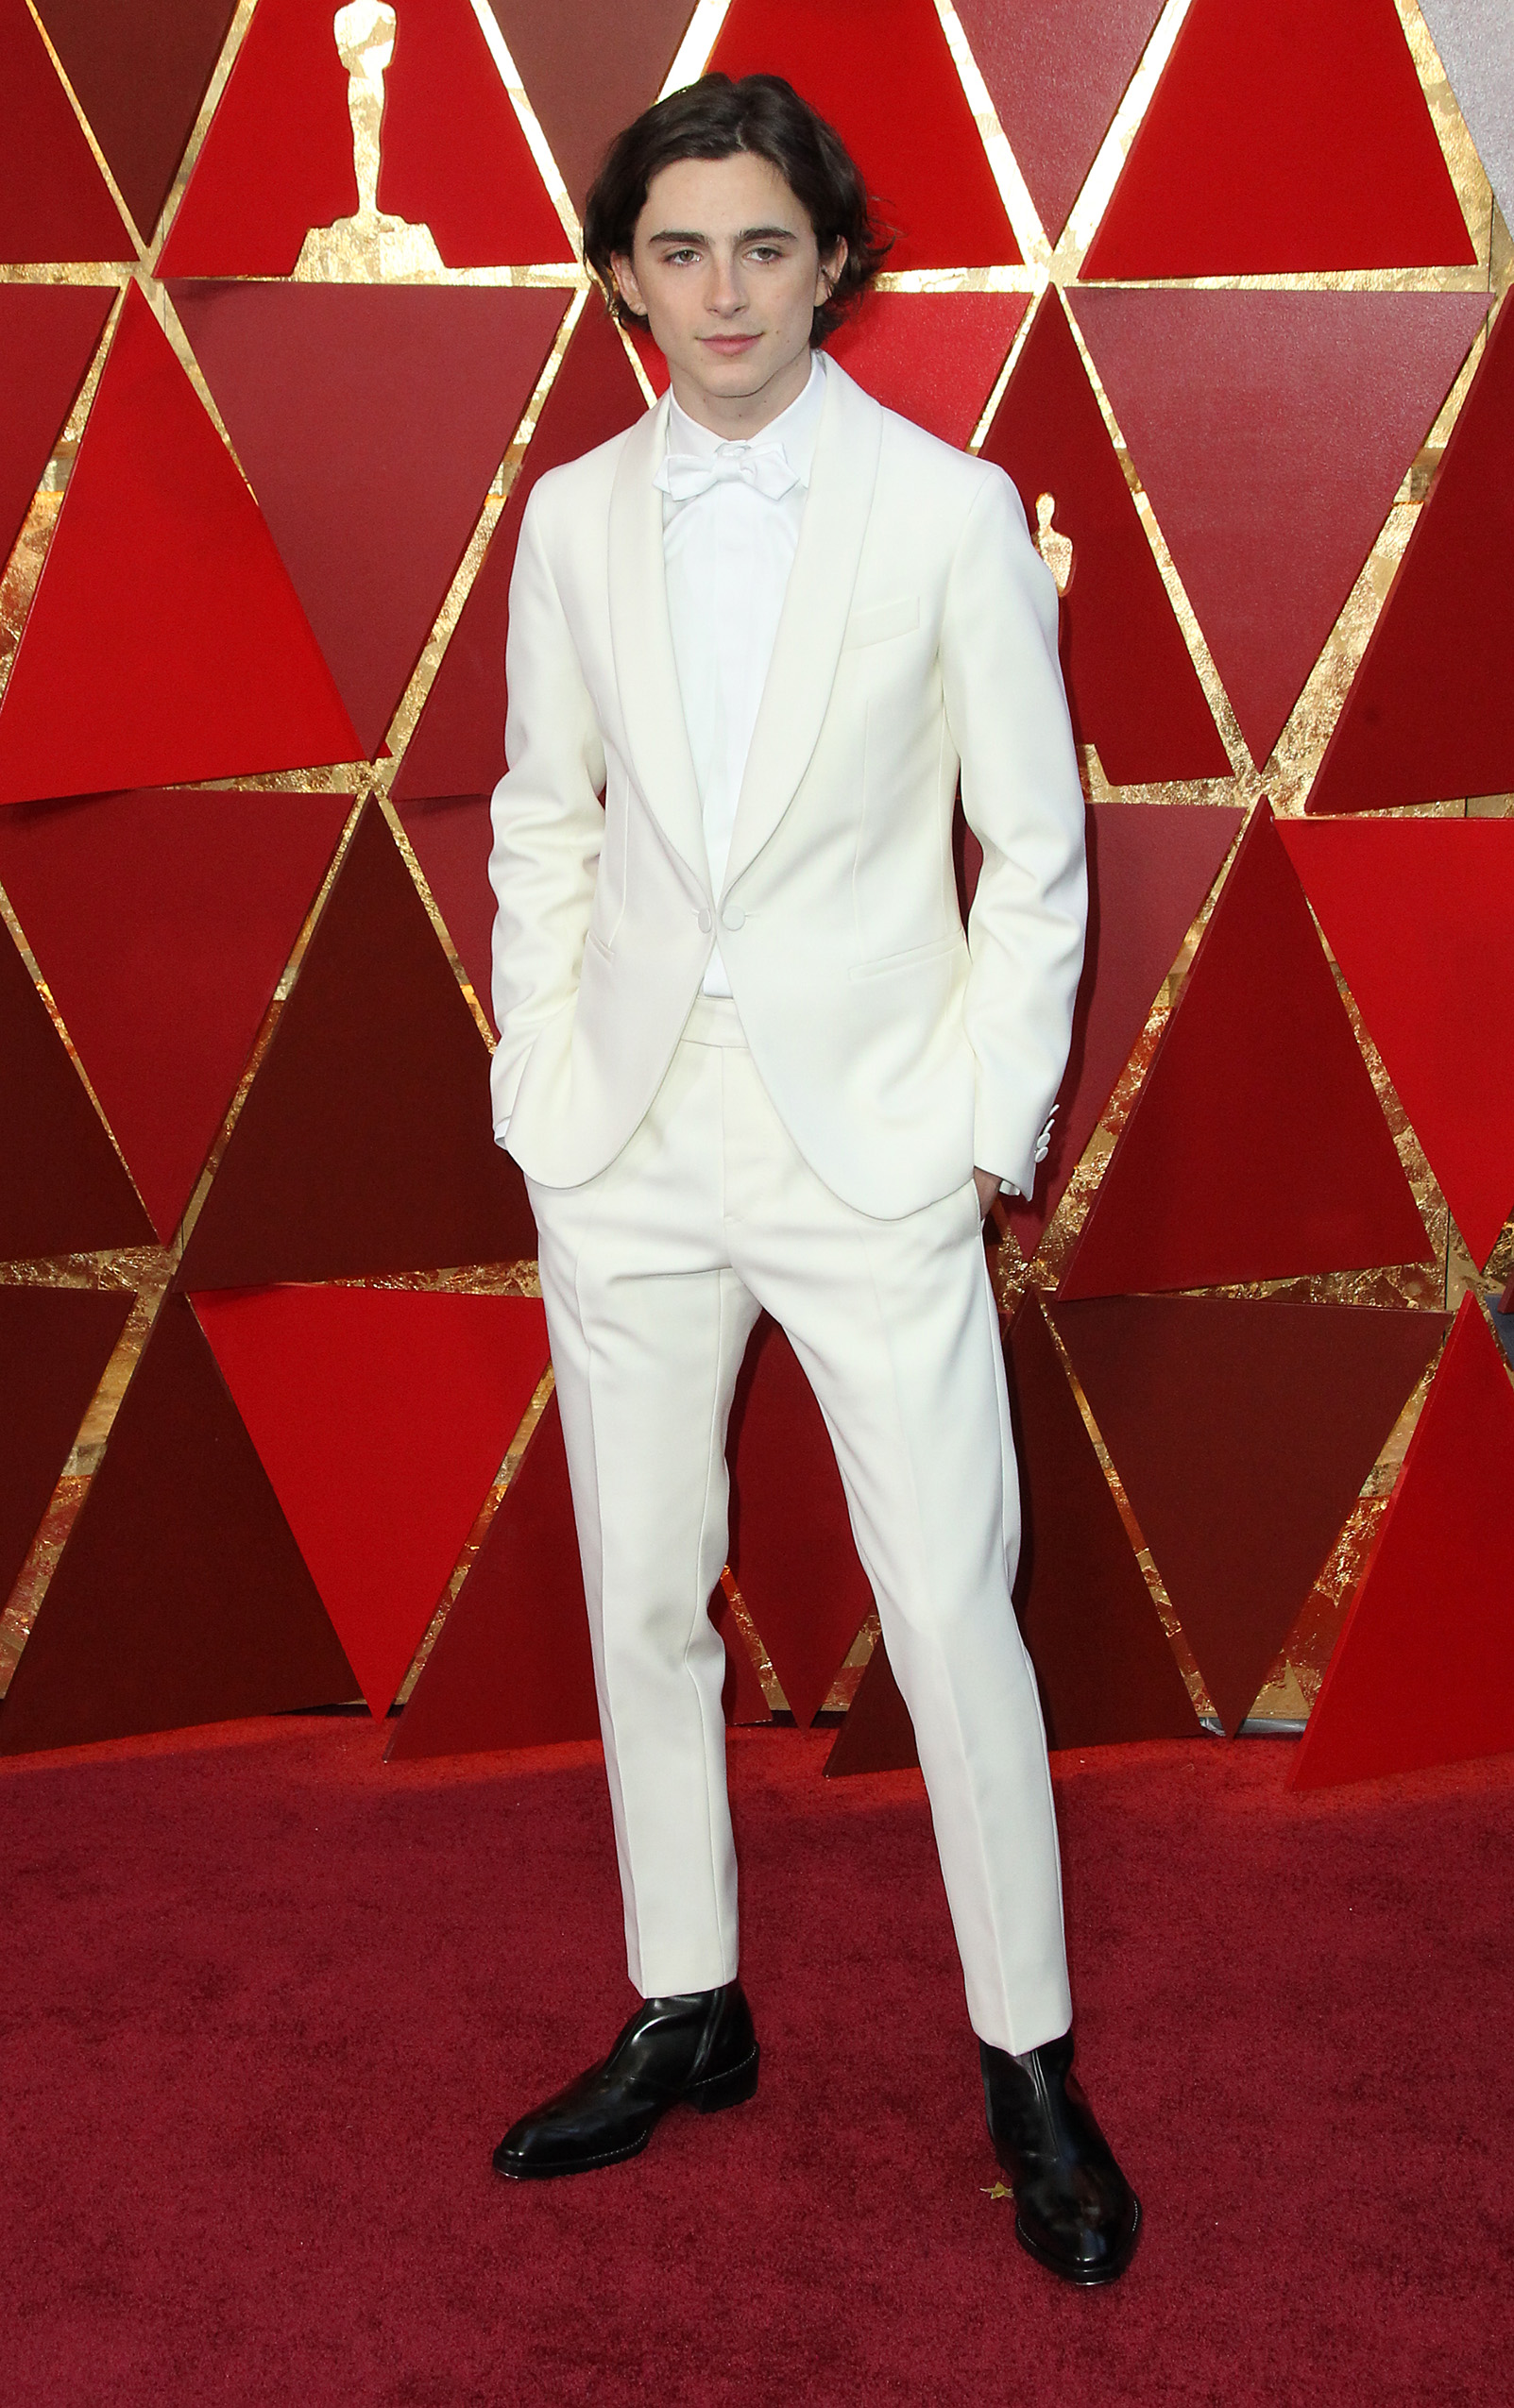 Timothee Chalametarrives at the 90th Annual Academy Awards (Oscars) held at the Dolby Theater in Hollywood, California. (Image: Adriana M. Barraza/WENN.com)<p></p>